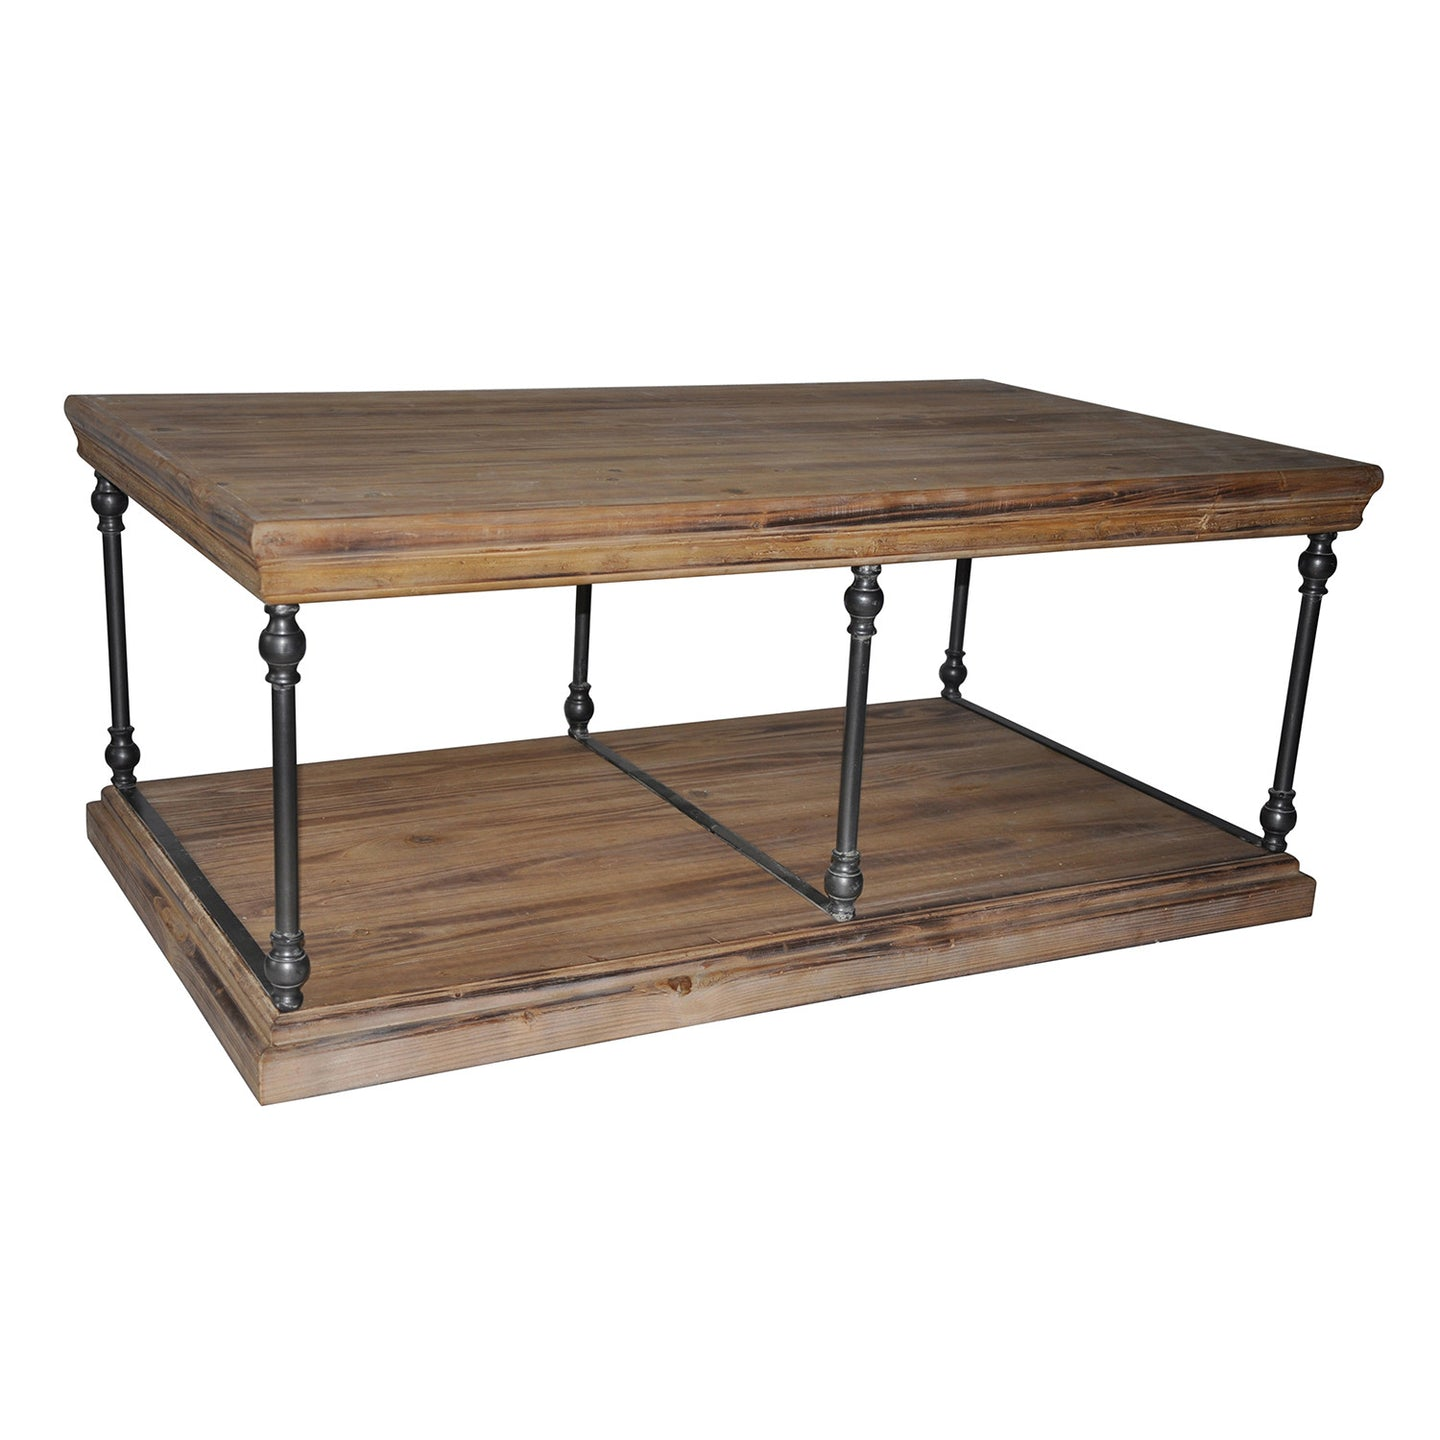 La Salle Metal and Wood Cocktail Table - The Rustic Furniture Store